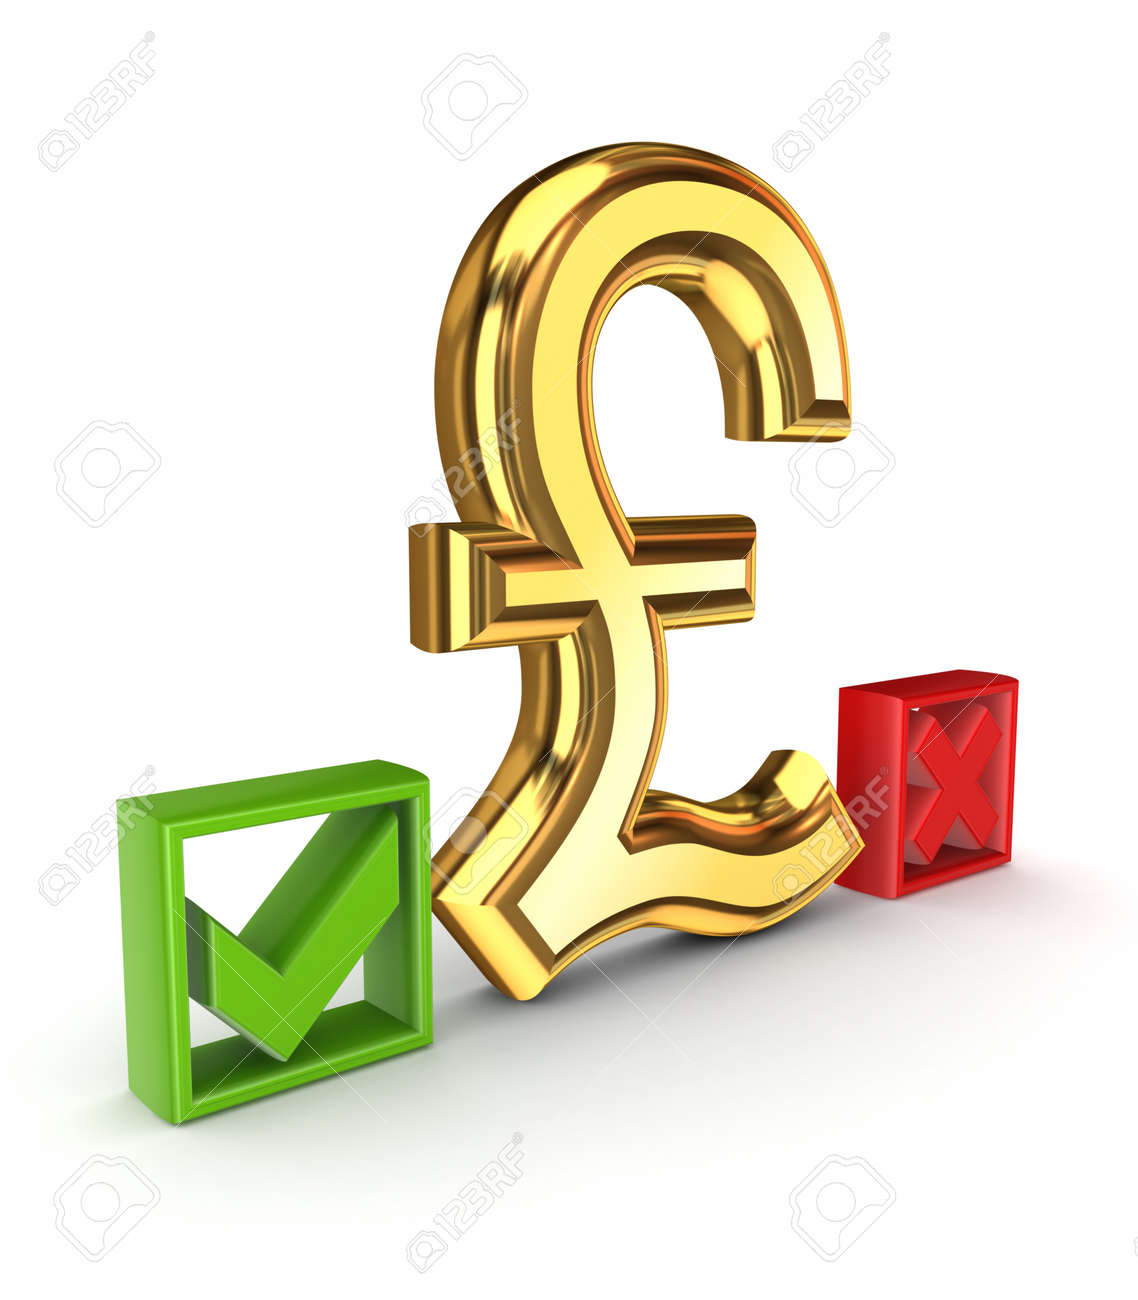 Pound sterling sign between tick and cross marks Stock Photo - 15668596